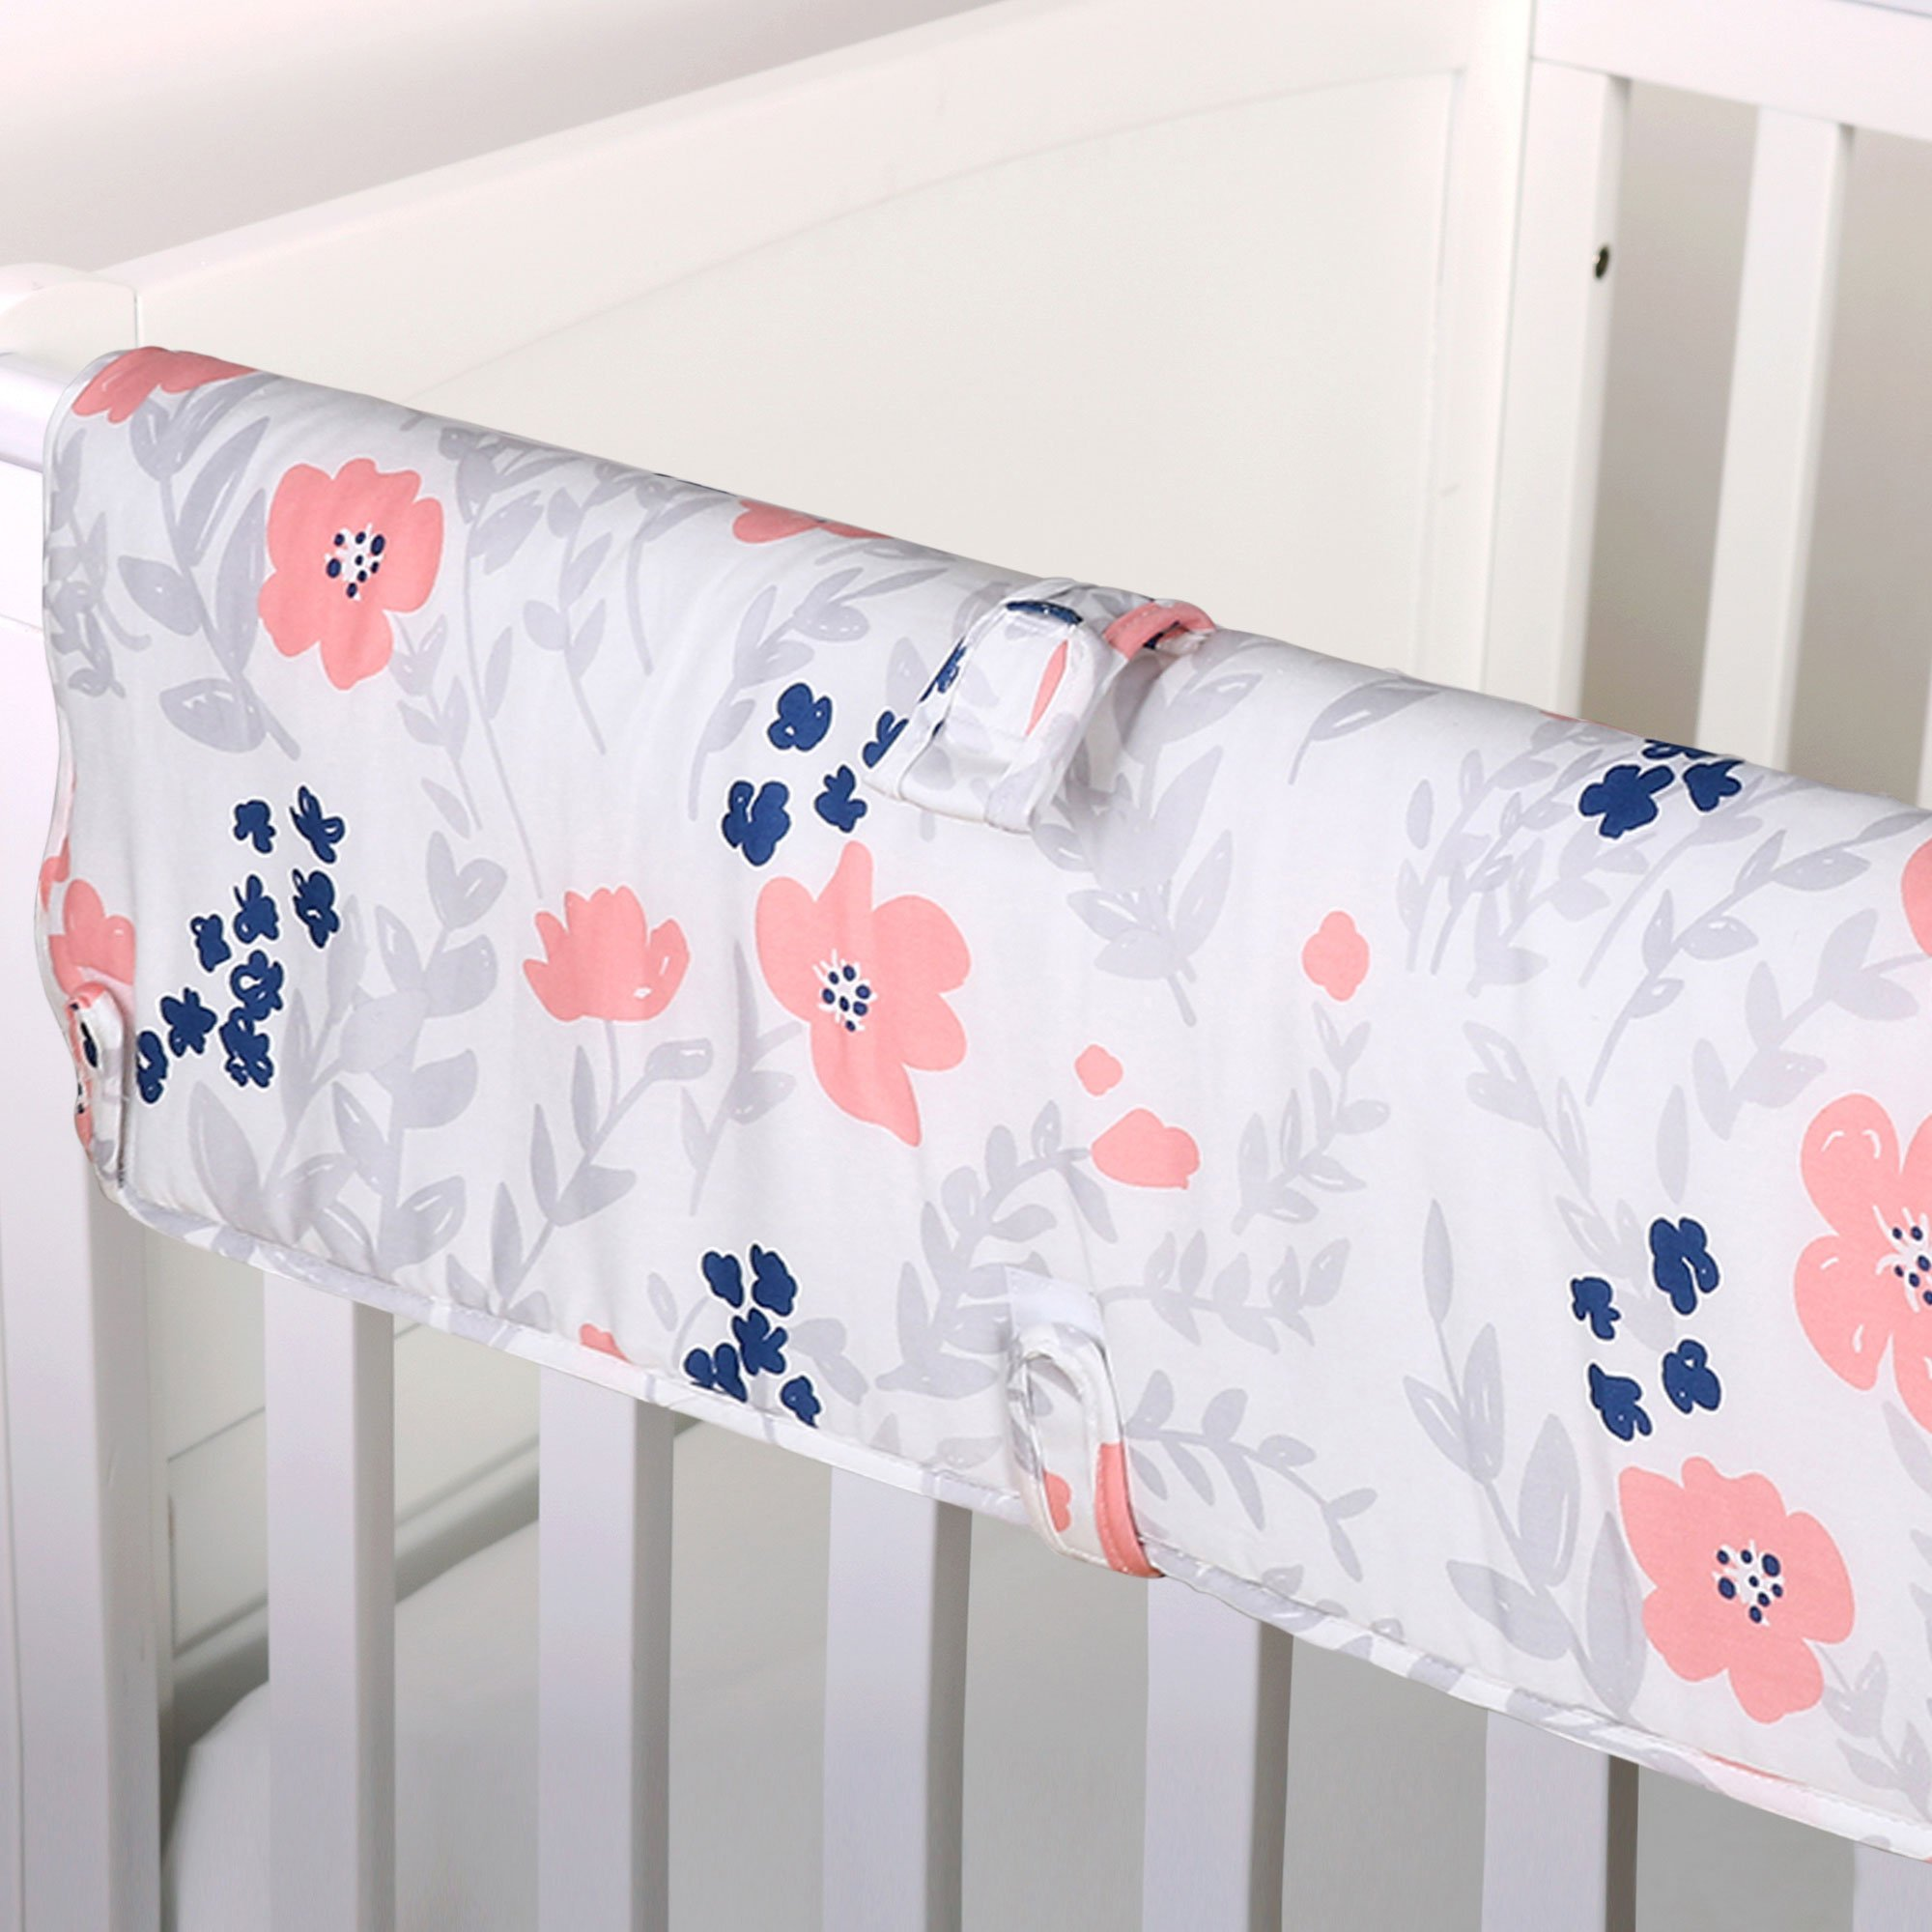 Coral Pink and Navy Blue Floral Print Padded Crib Rail Guard by The Peanut Shell by The Peanut Shell